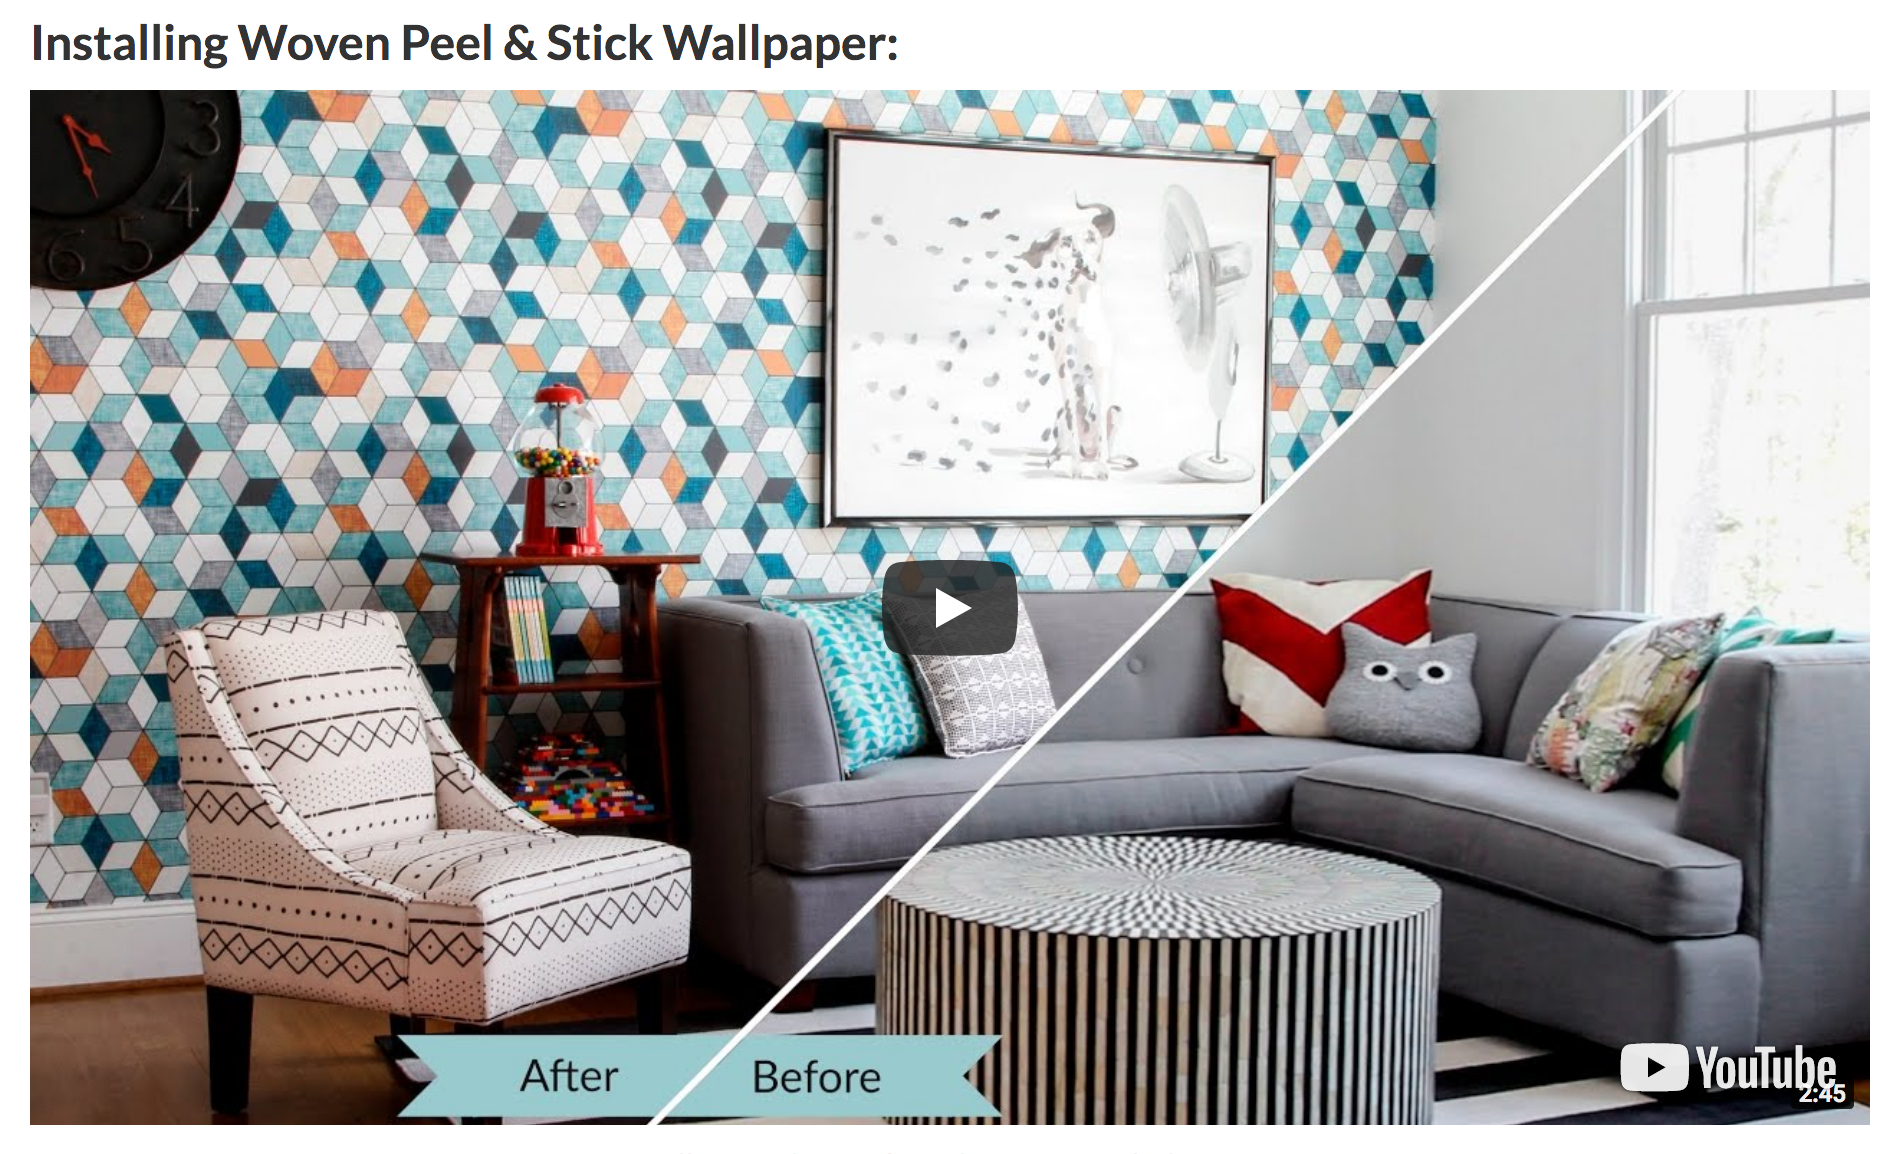 How to Install Woven Peel & Stick Wallpaper and Smooth